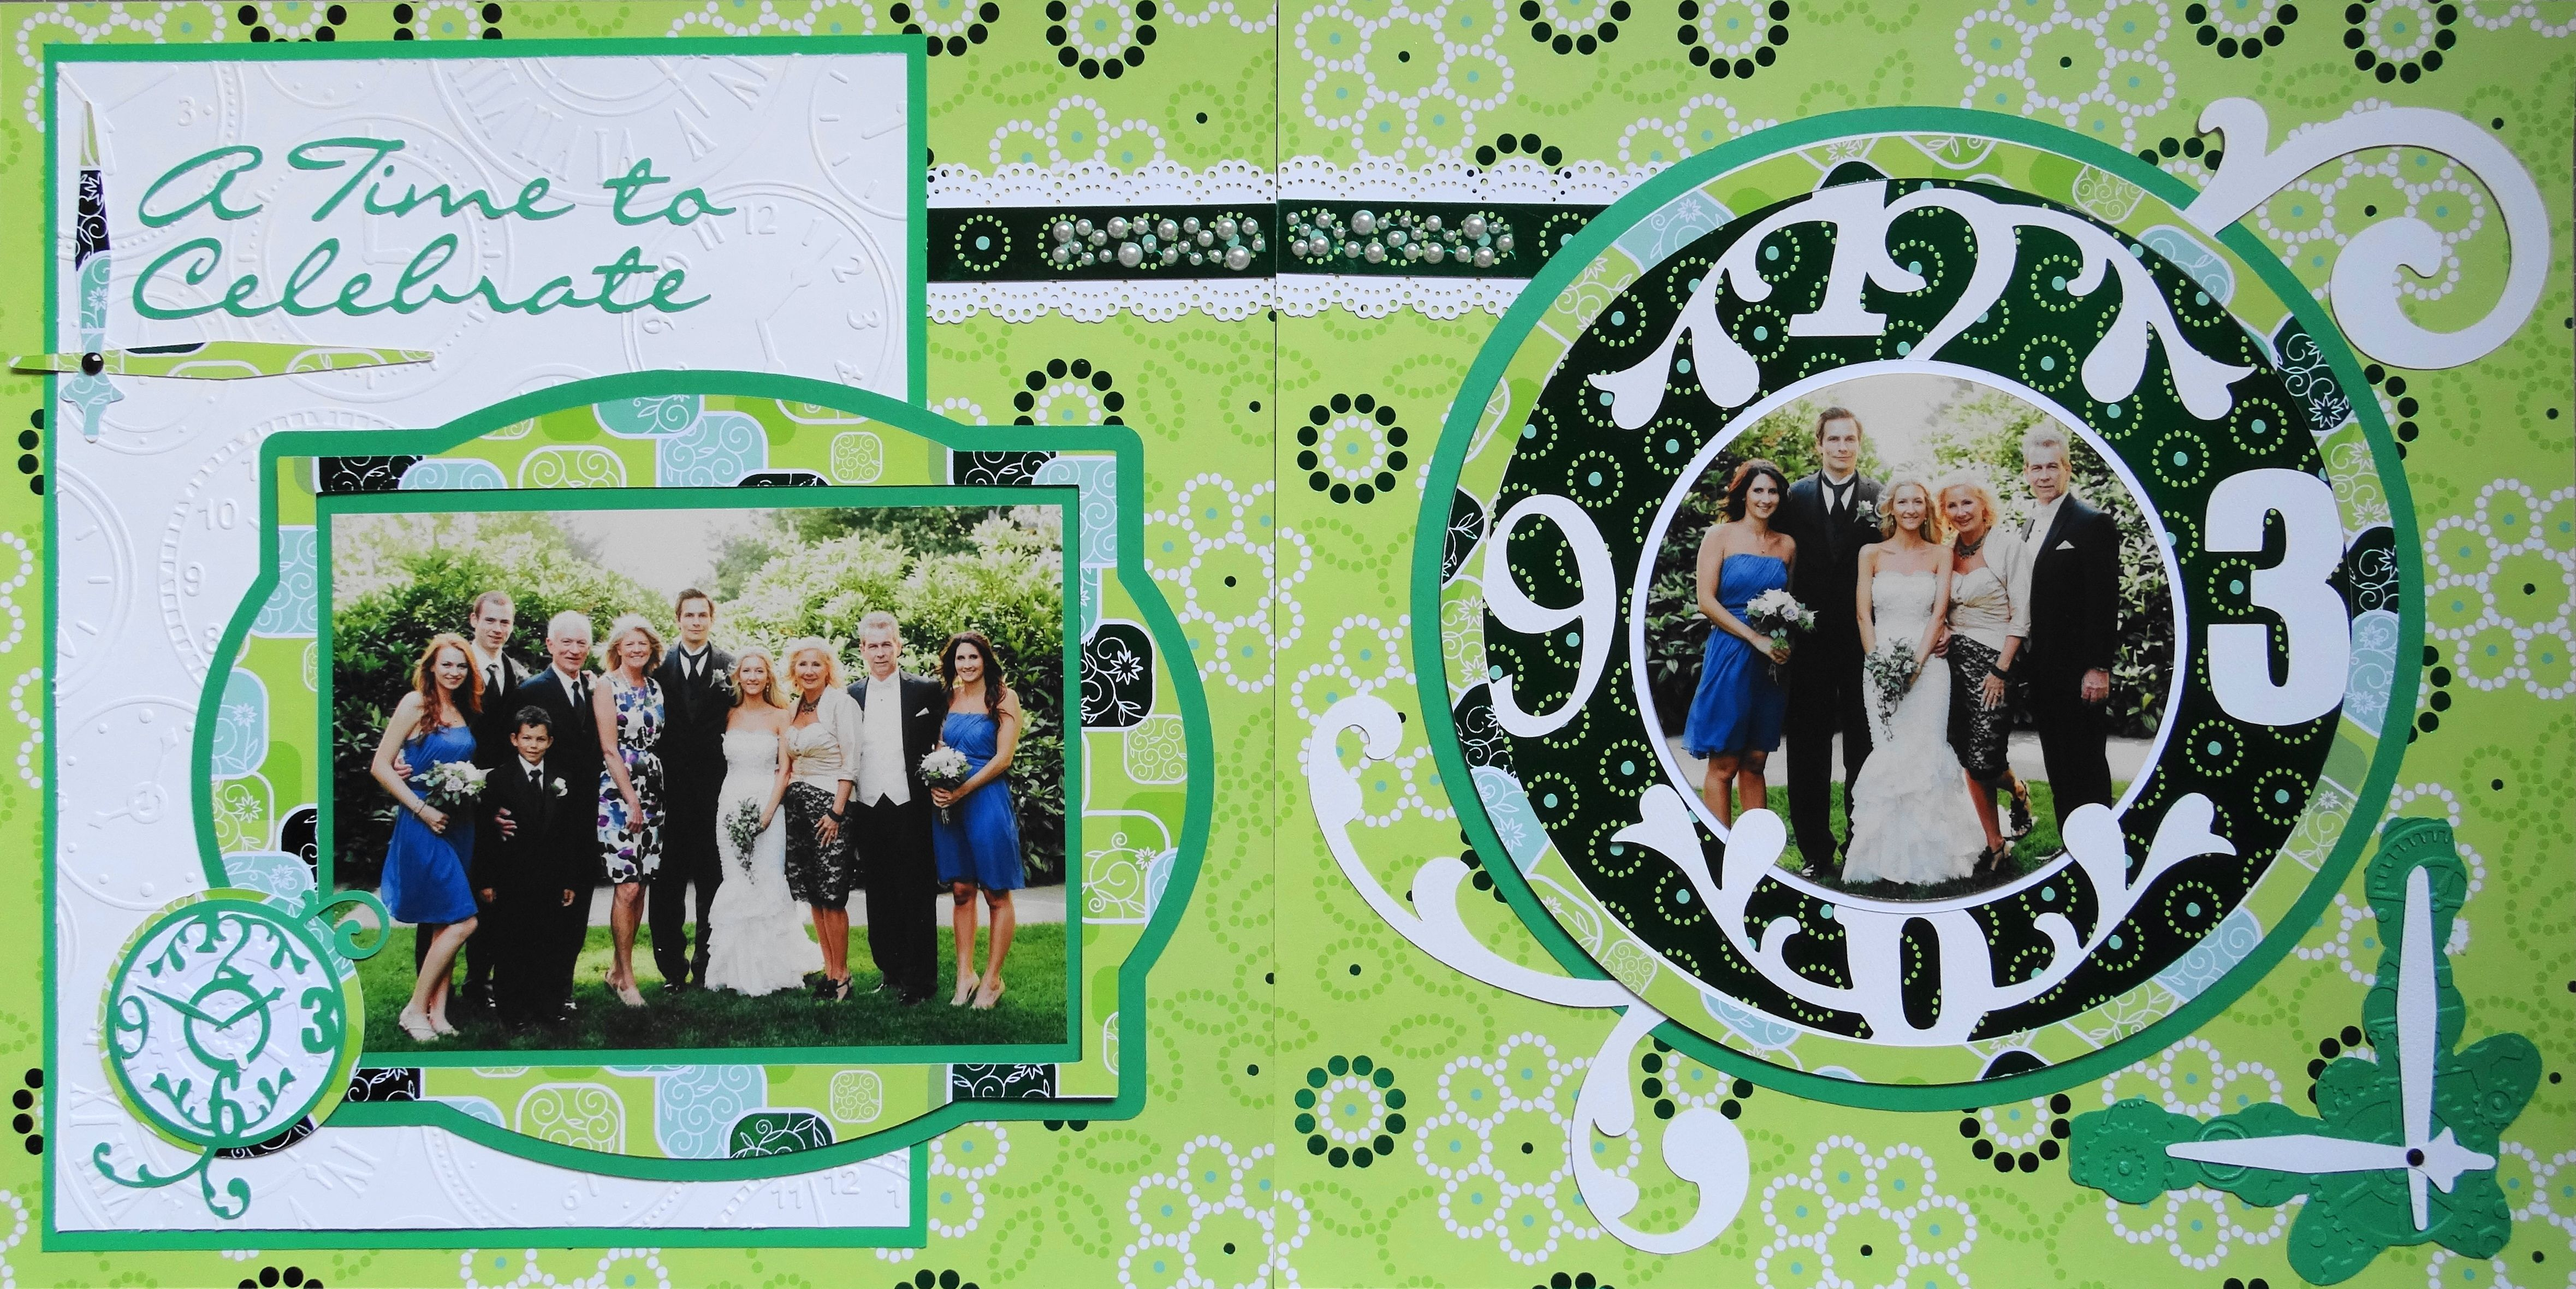 Wedding scrapbook ideas using cricut - Wedding Scrapbook Page A Time To Celebrate 2 Page Wedding Layout With Clock Theme